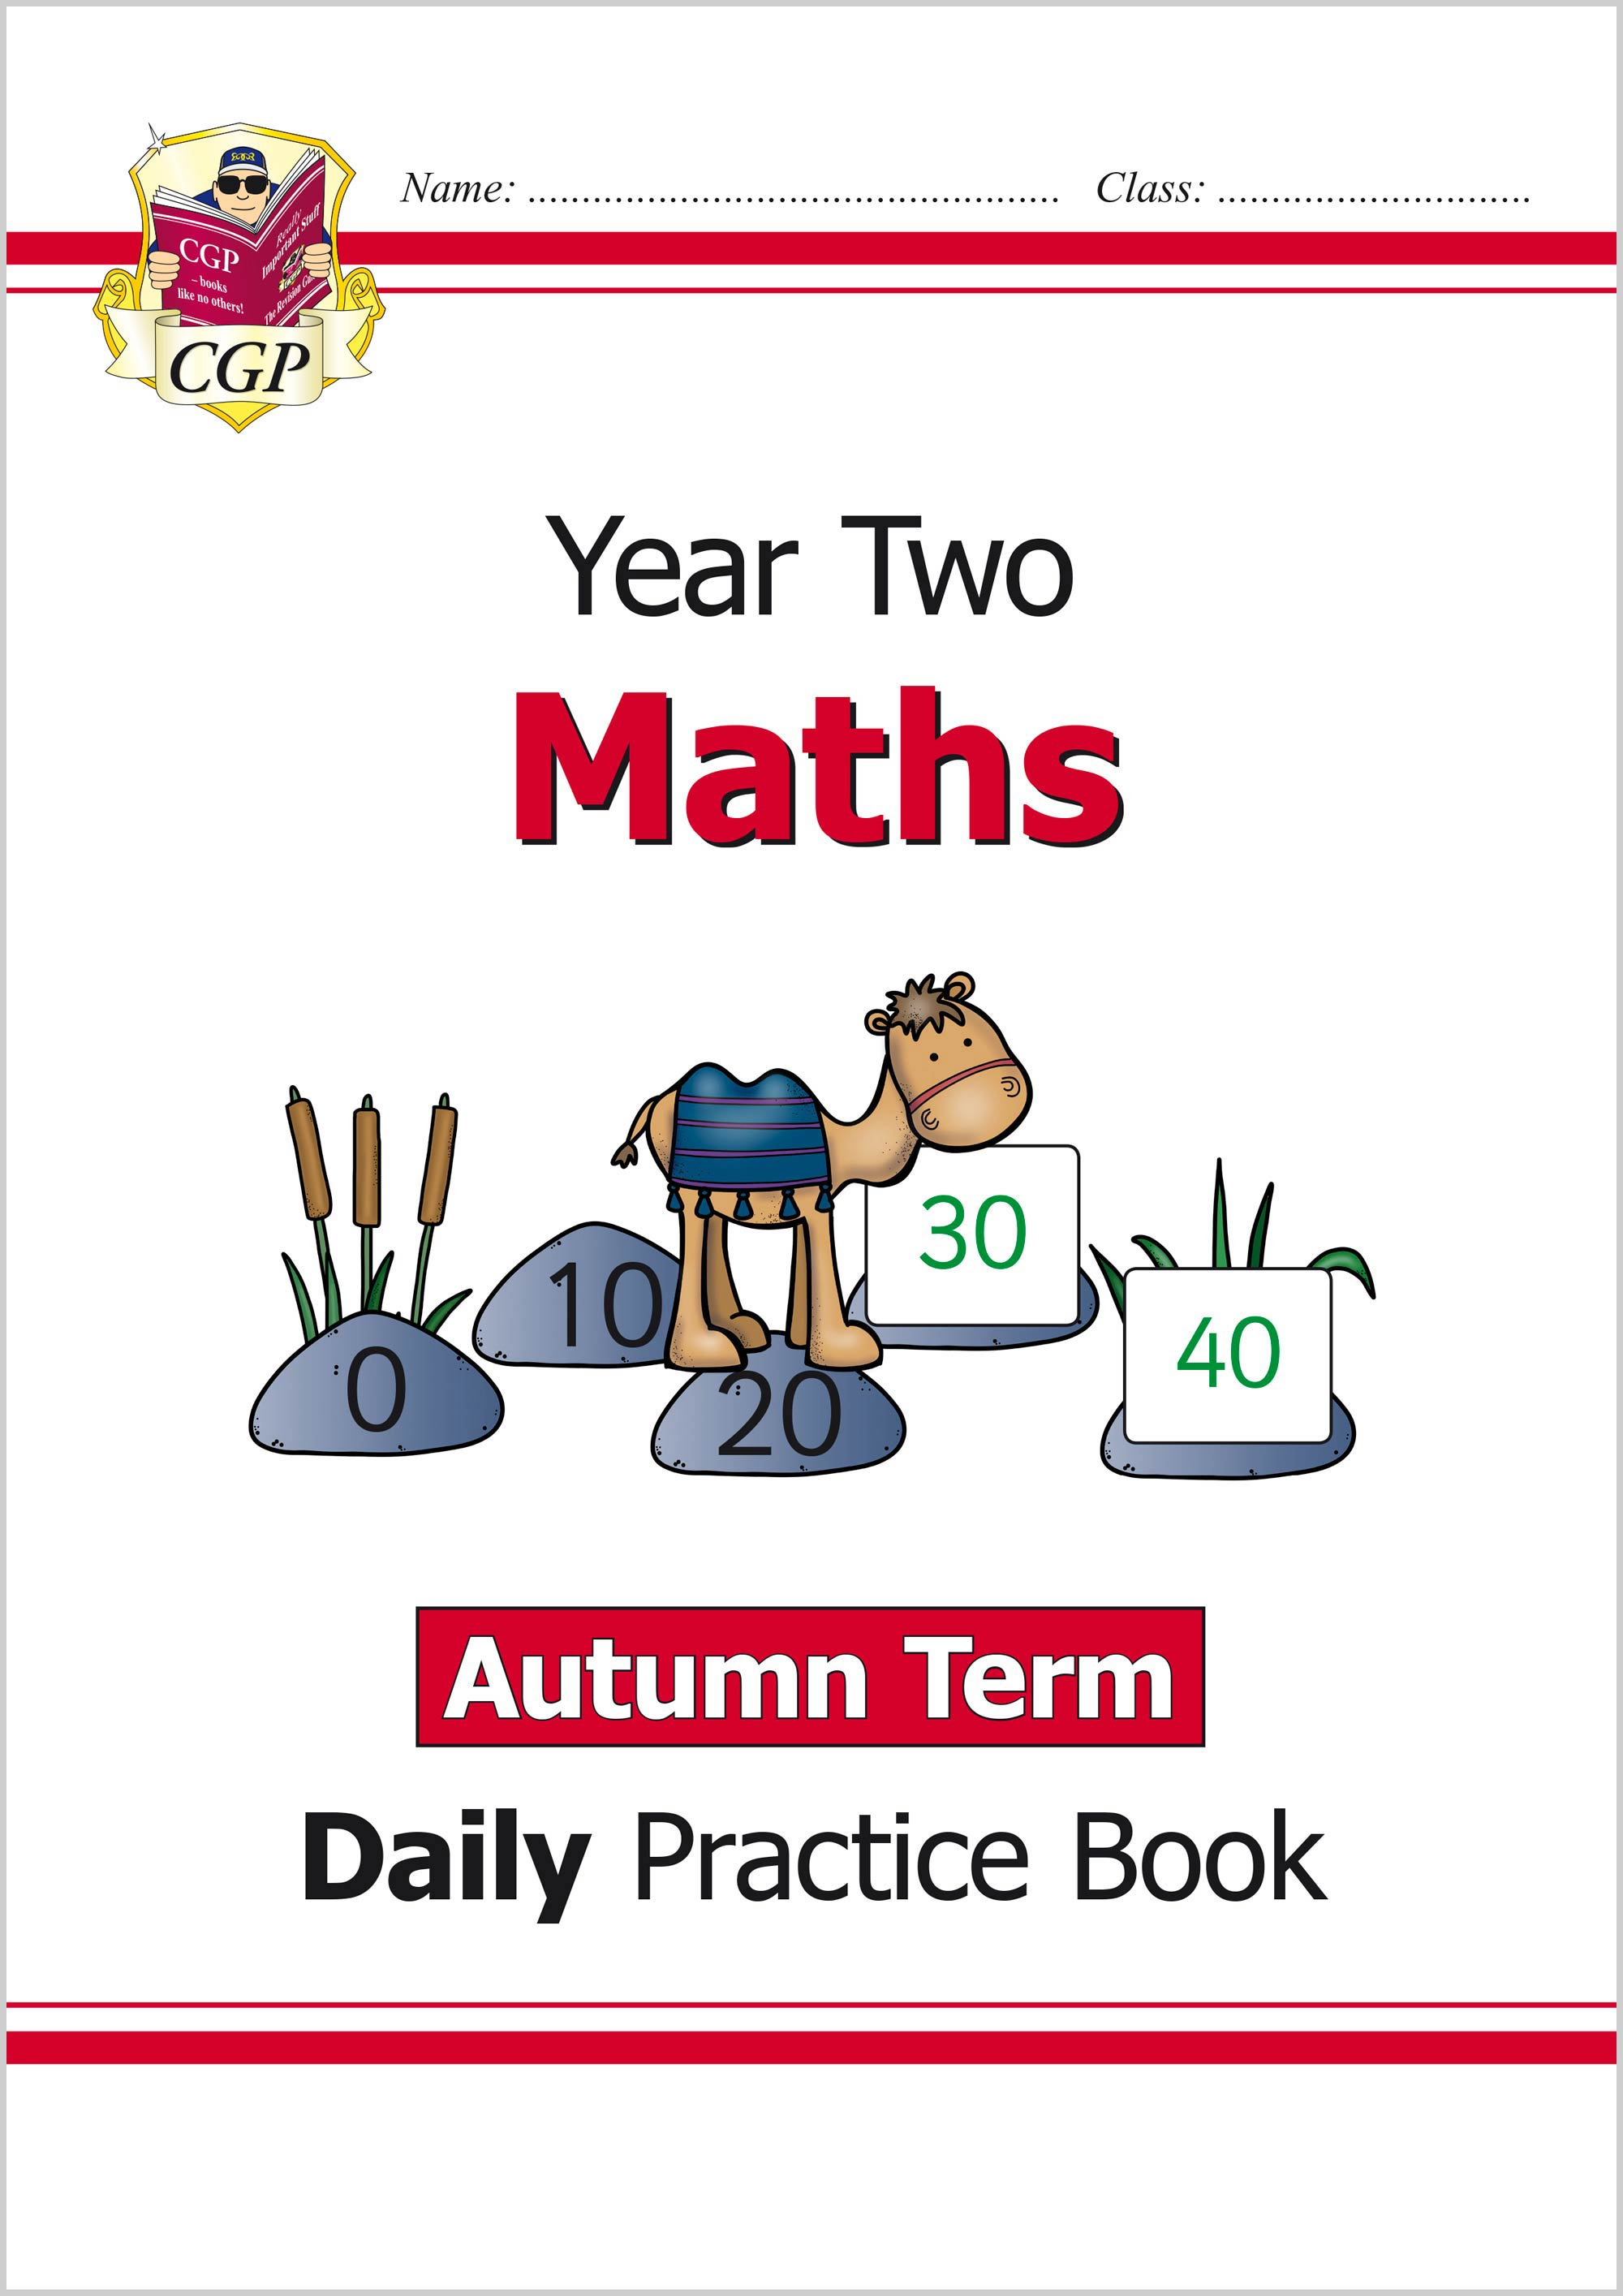 M2WAU11 - New KS1 Maths Daily Practice Book: Year 2 - Autumn Term